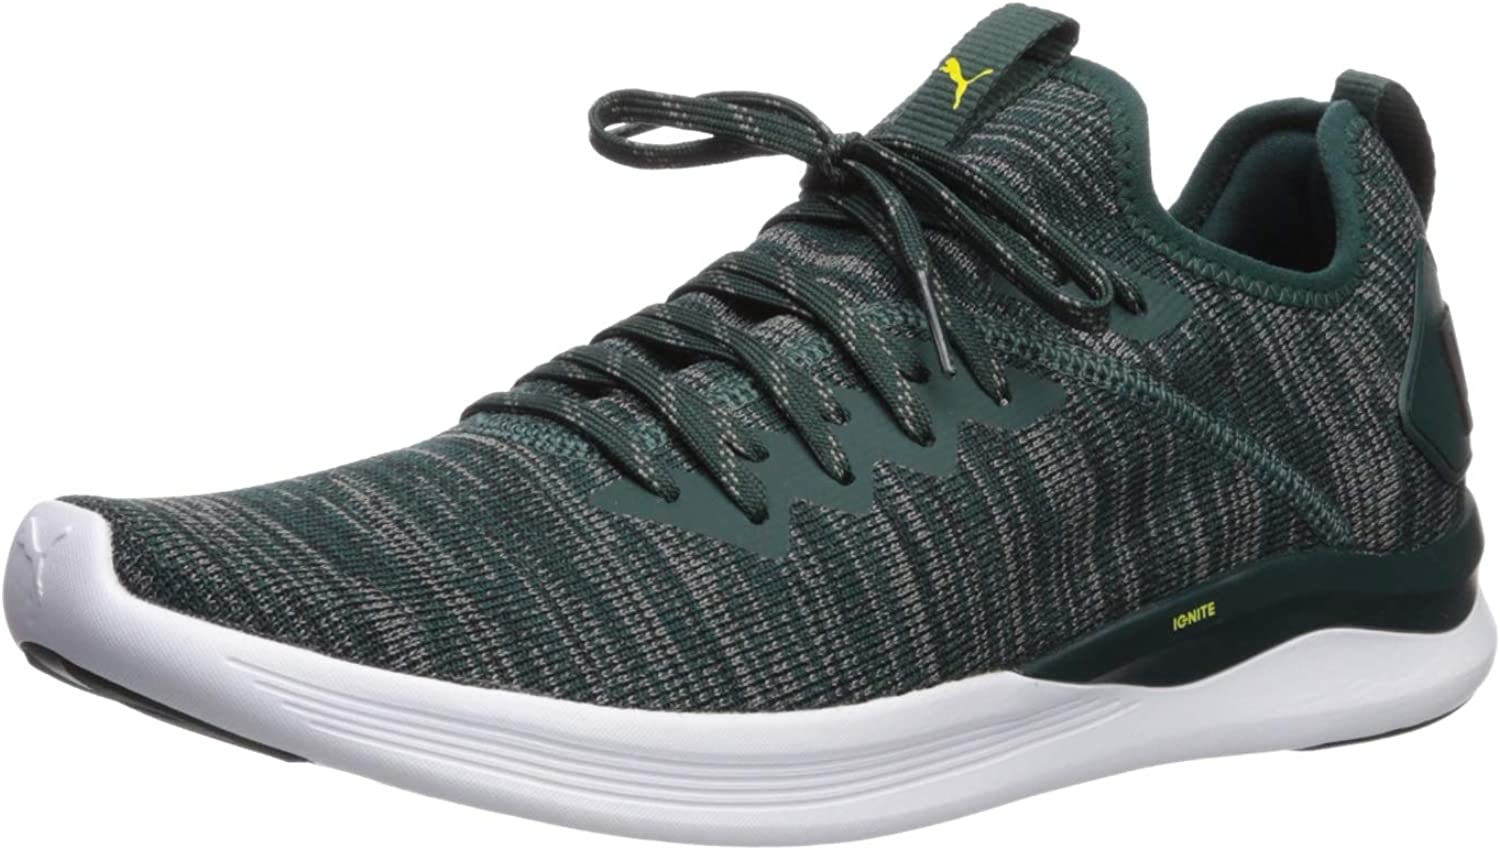 PUMA Unisex-Adult Ignite Flash Evoknit Sneakers